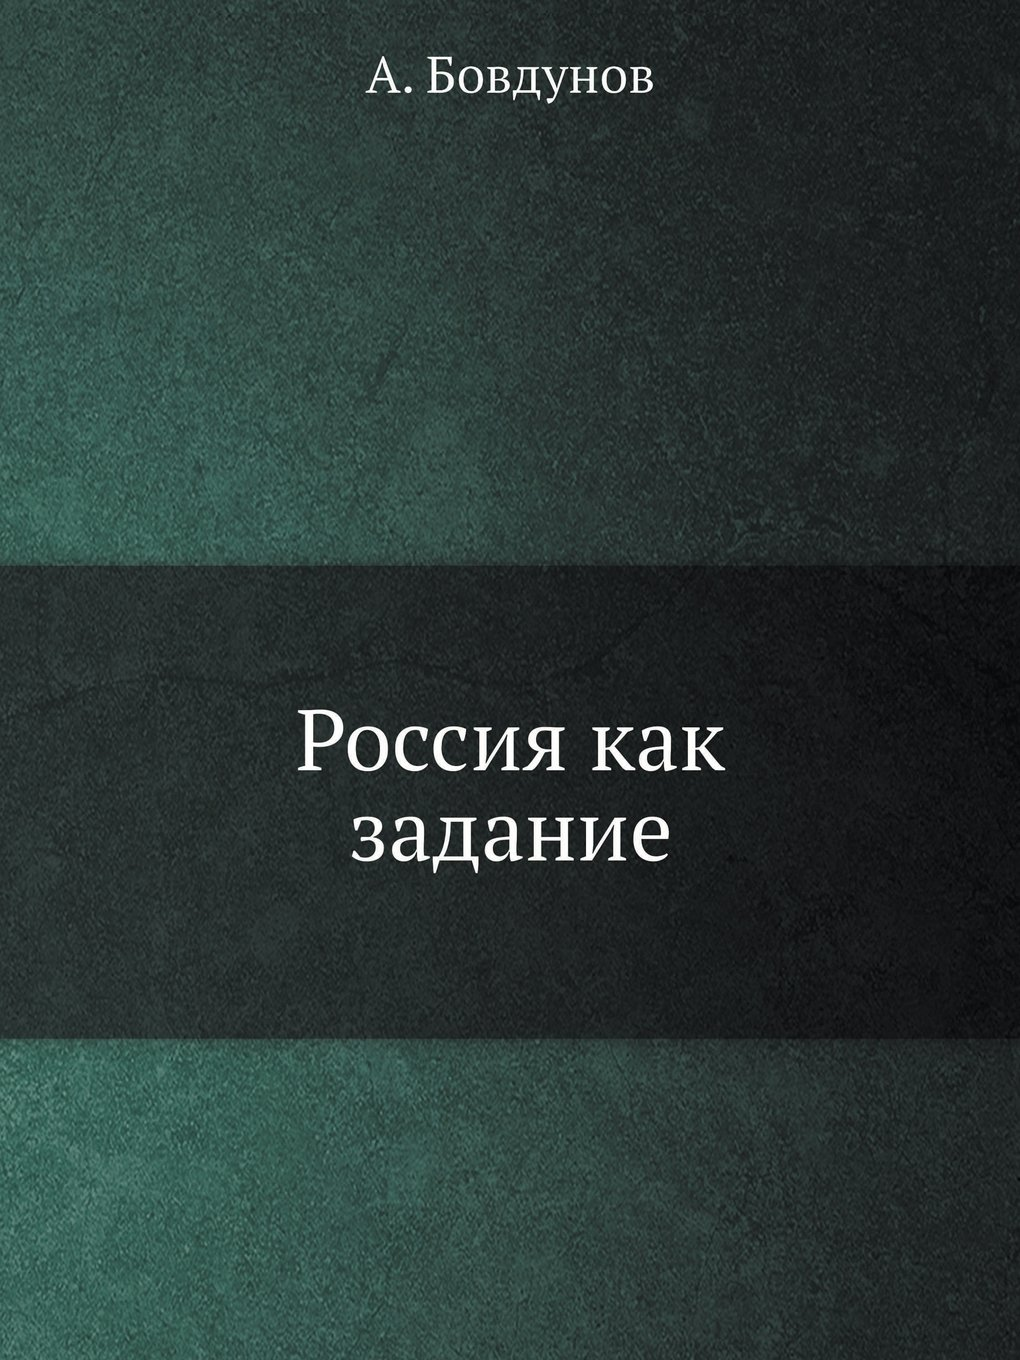 Read Online Russia as an objective (Russian Edition) ebook